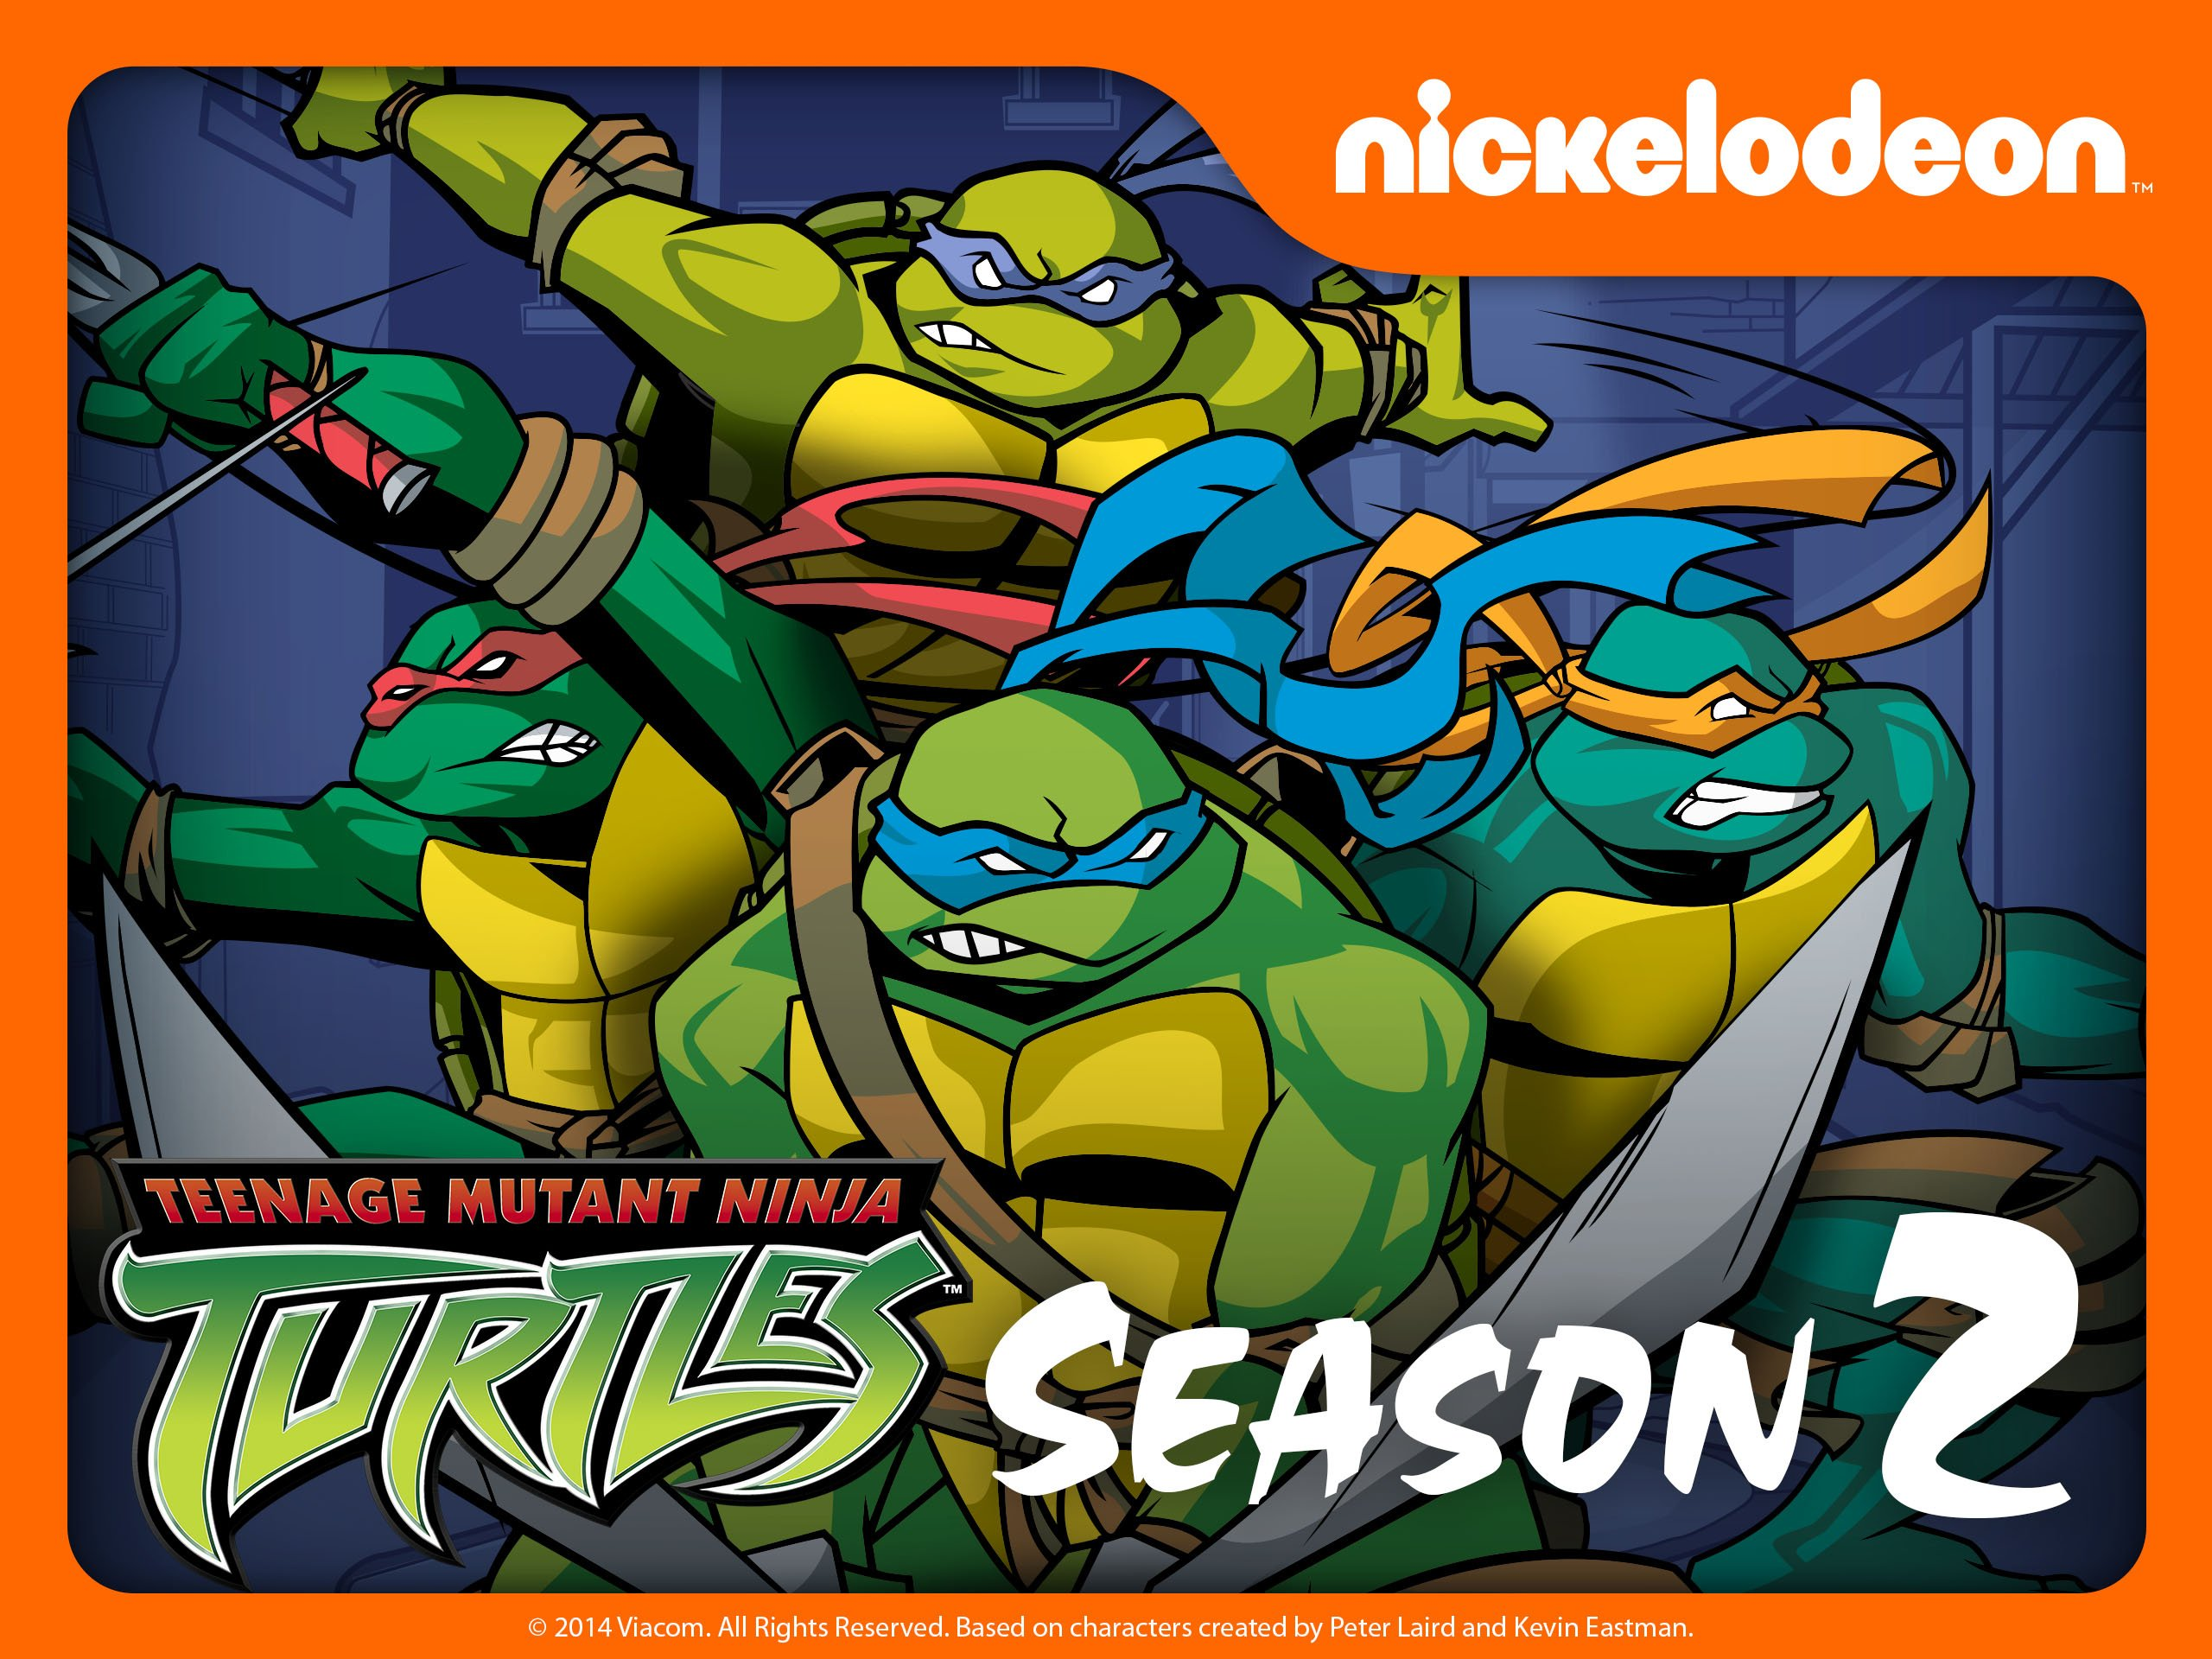 tmnt 2003 season 1 free download